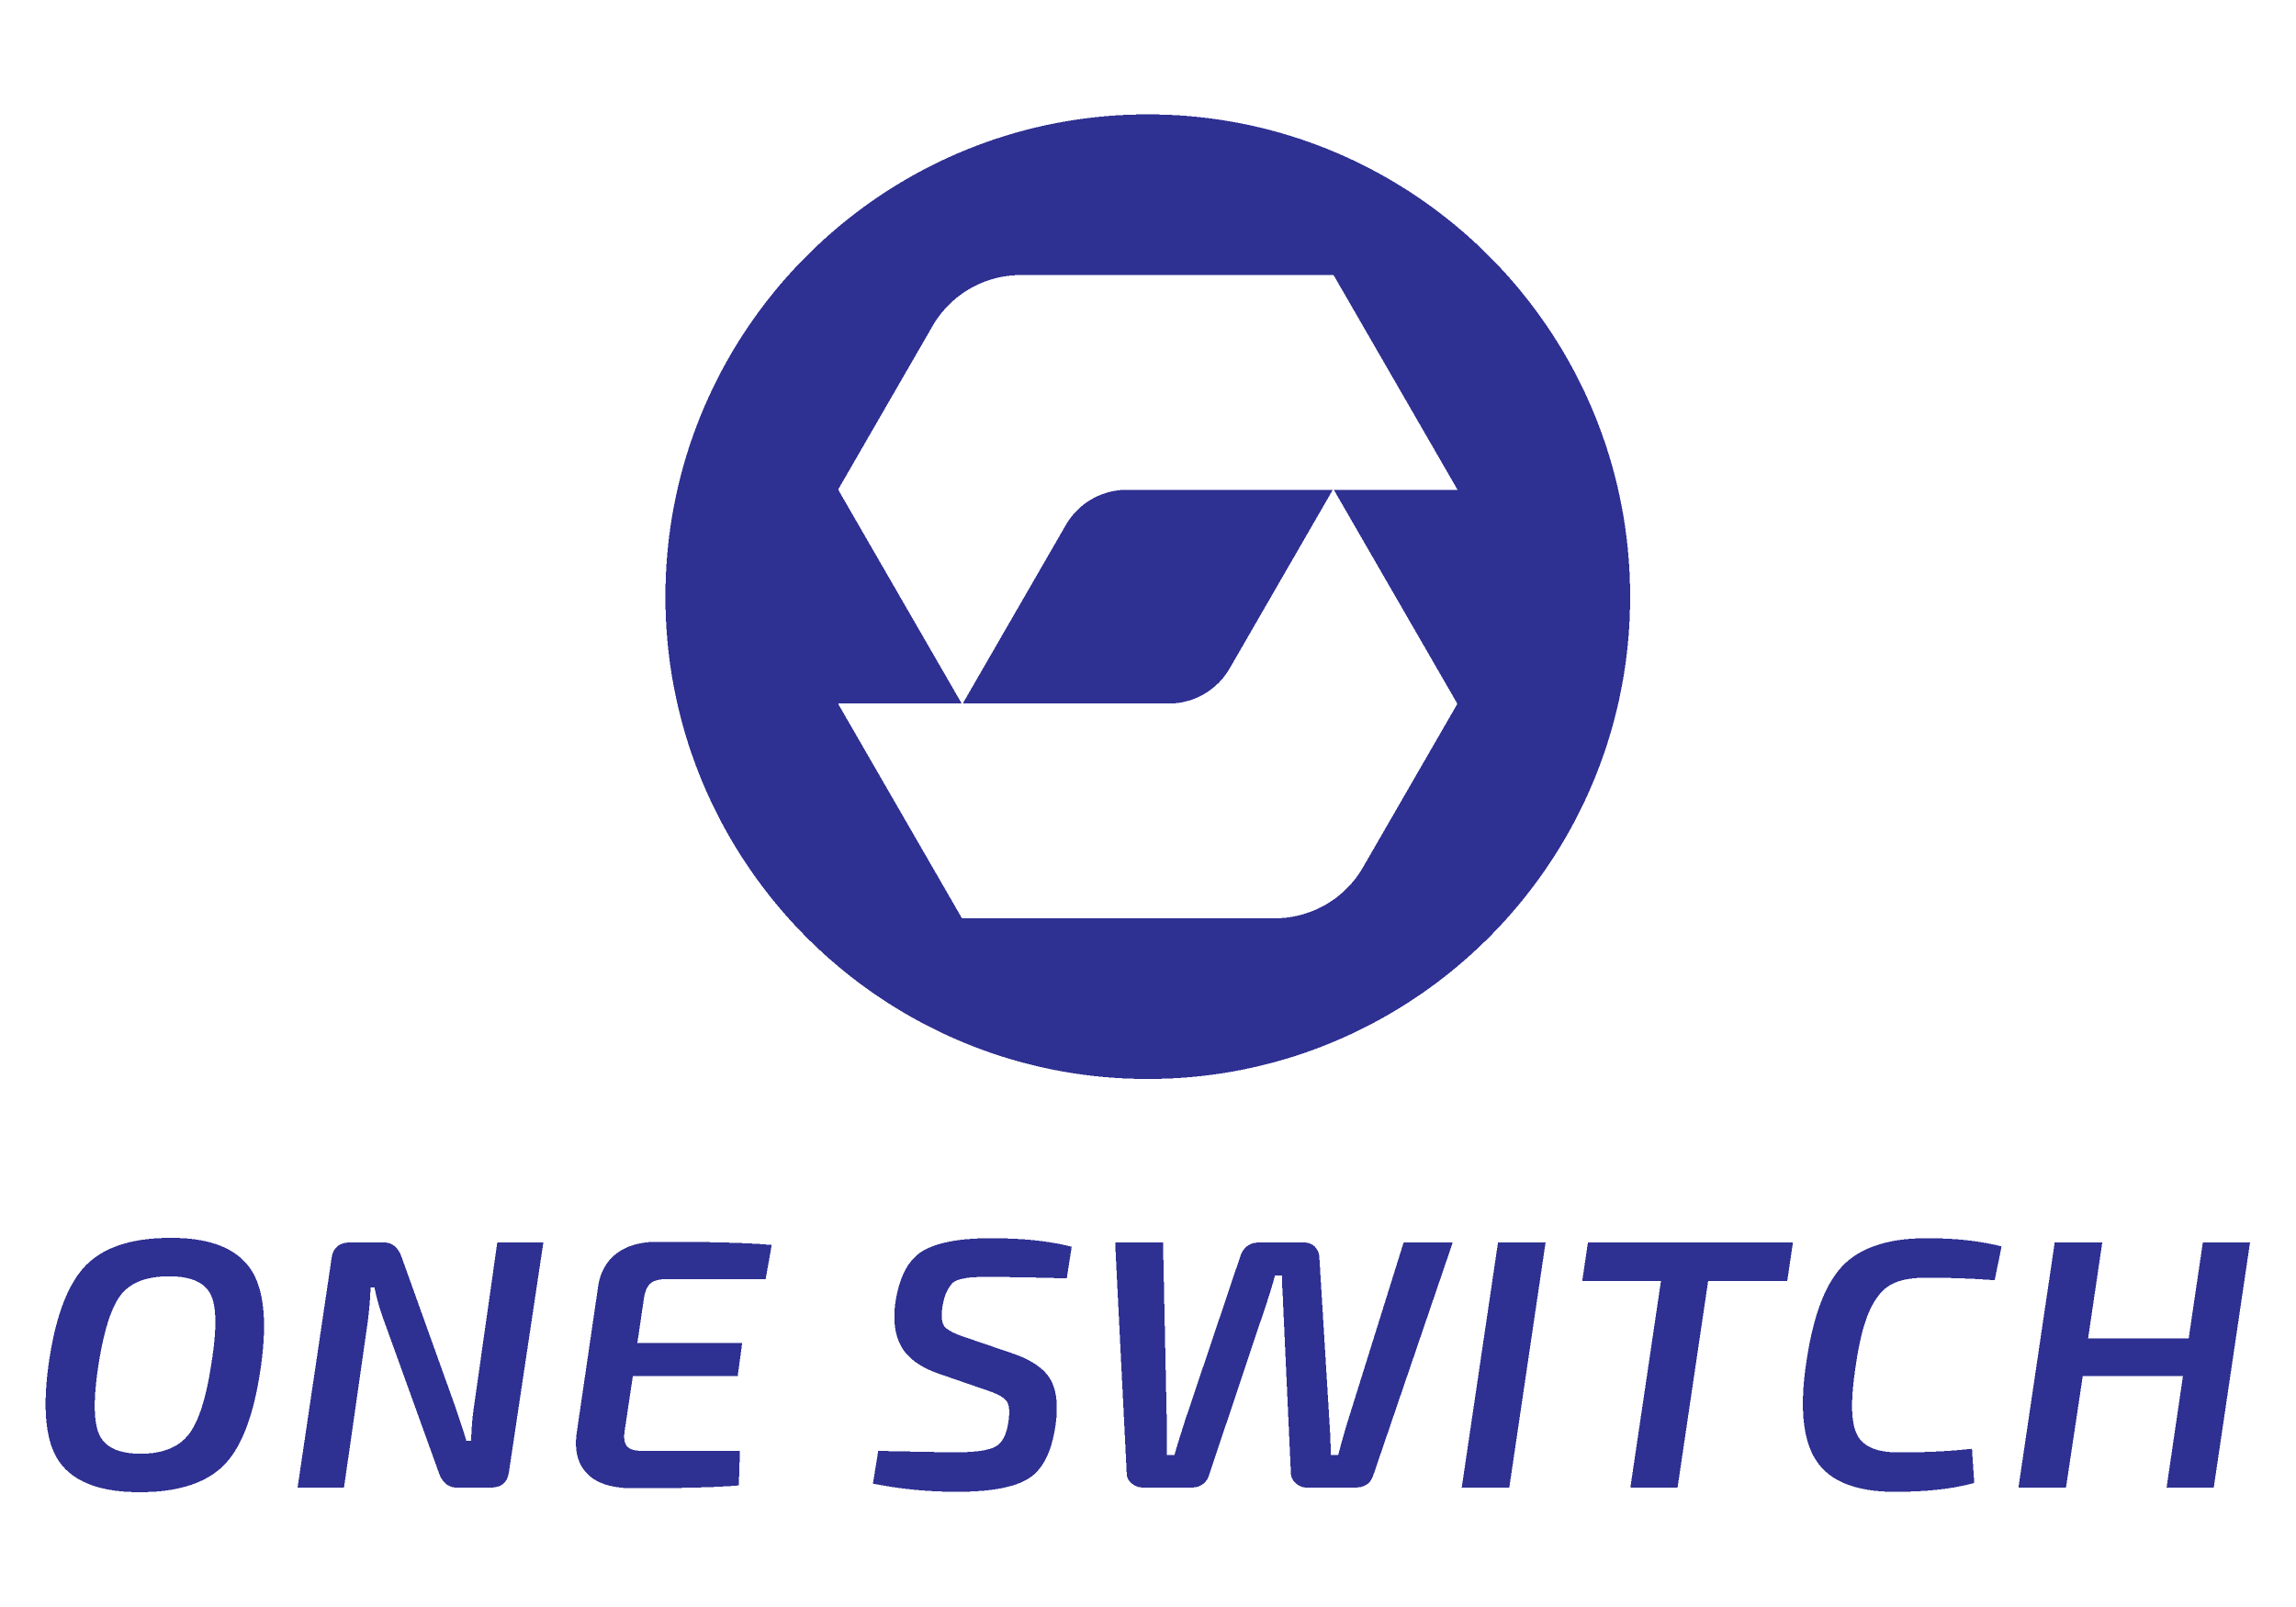 One Switch